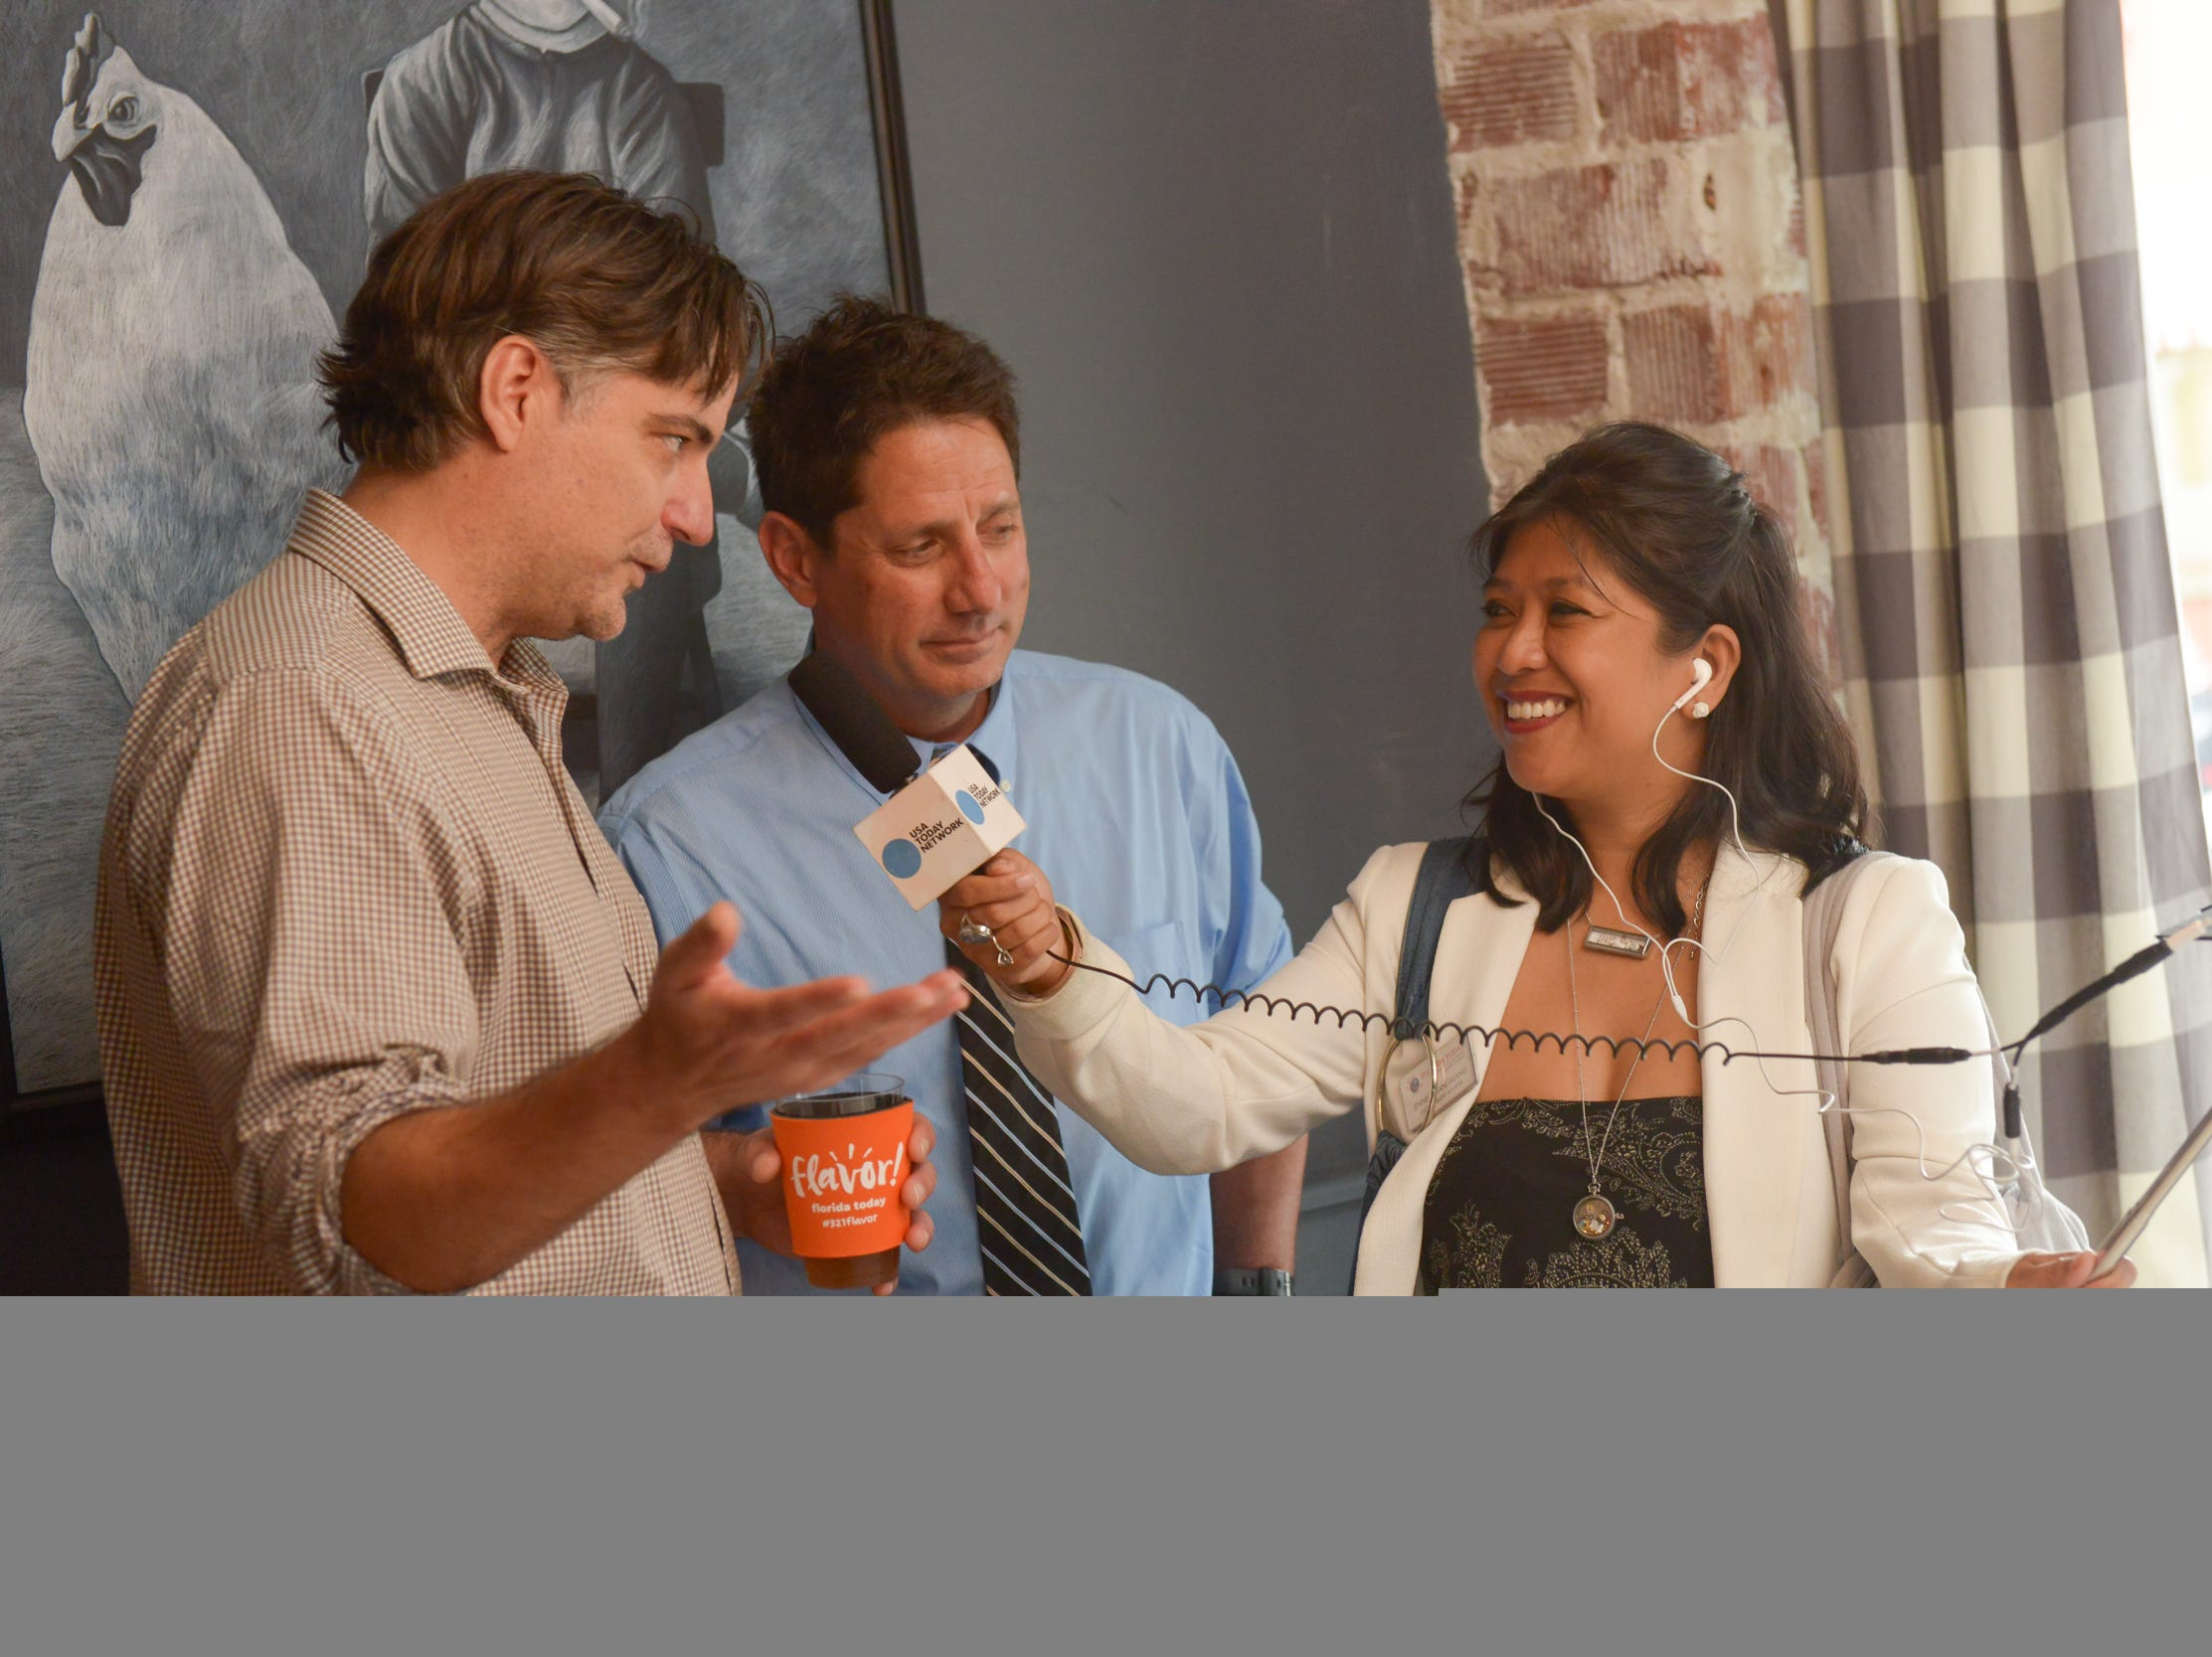 Senior Digital Producer Jennifer Sangalang interviews environmental reporter Jim Waymer and business editor Wayne T. Price at a community gathering to kick off Shark Week, hosted by Florida Today at Crush XI in downtown Melbourne.